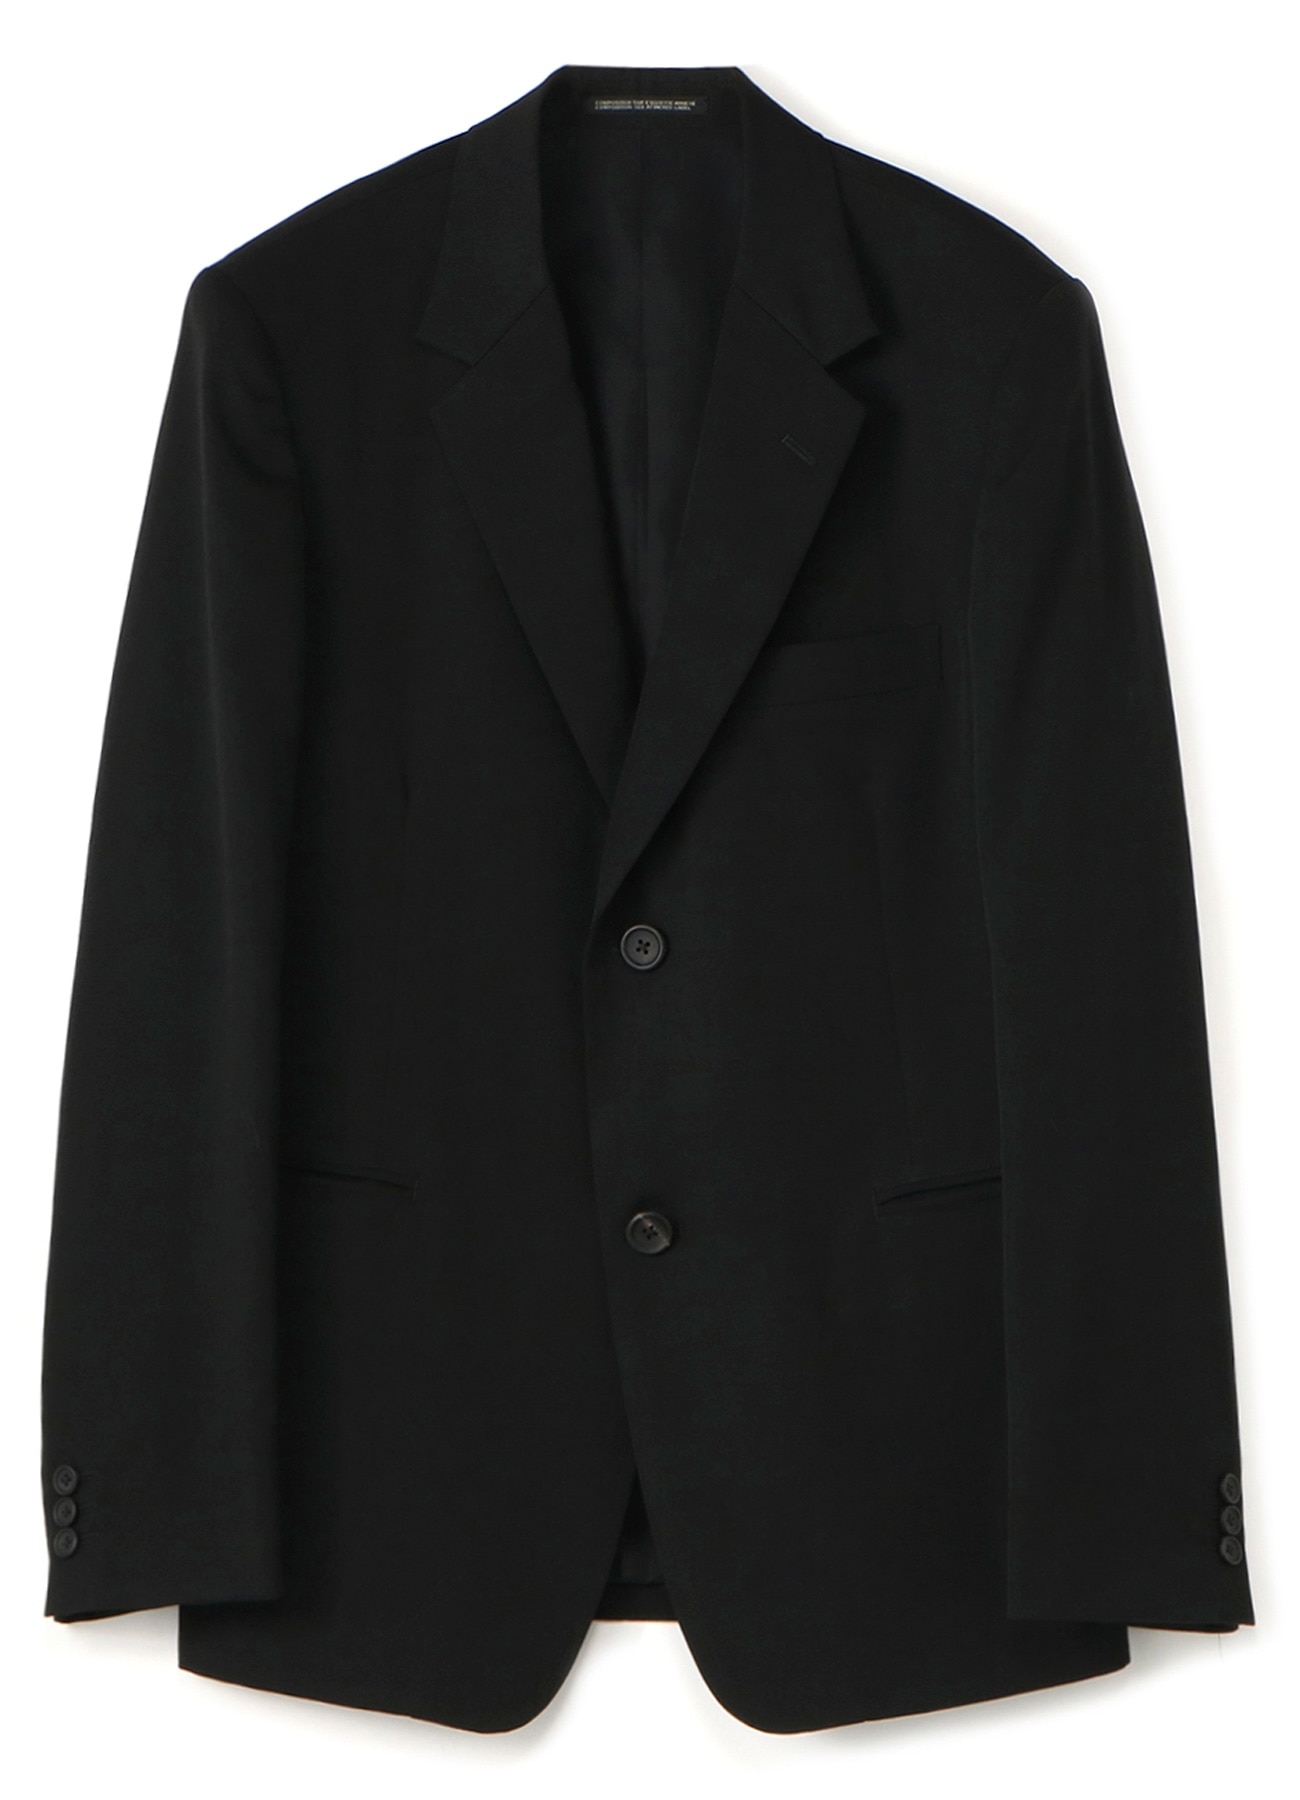 COSTUME D'HOMME SUITS GABARDINE 2BSJKT